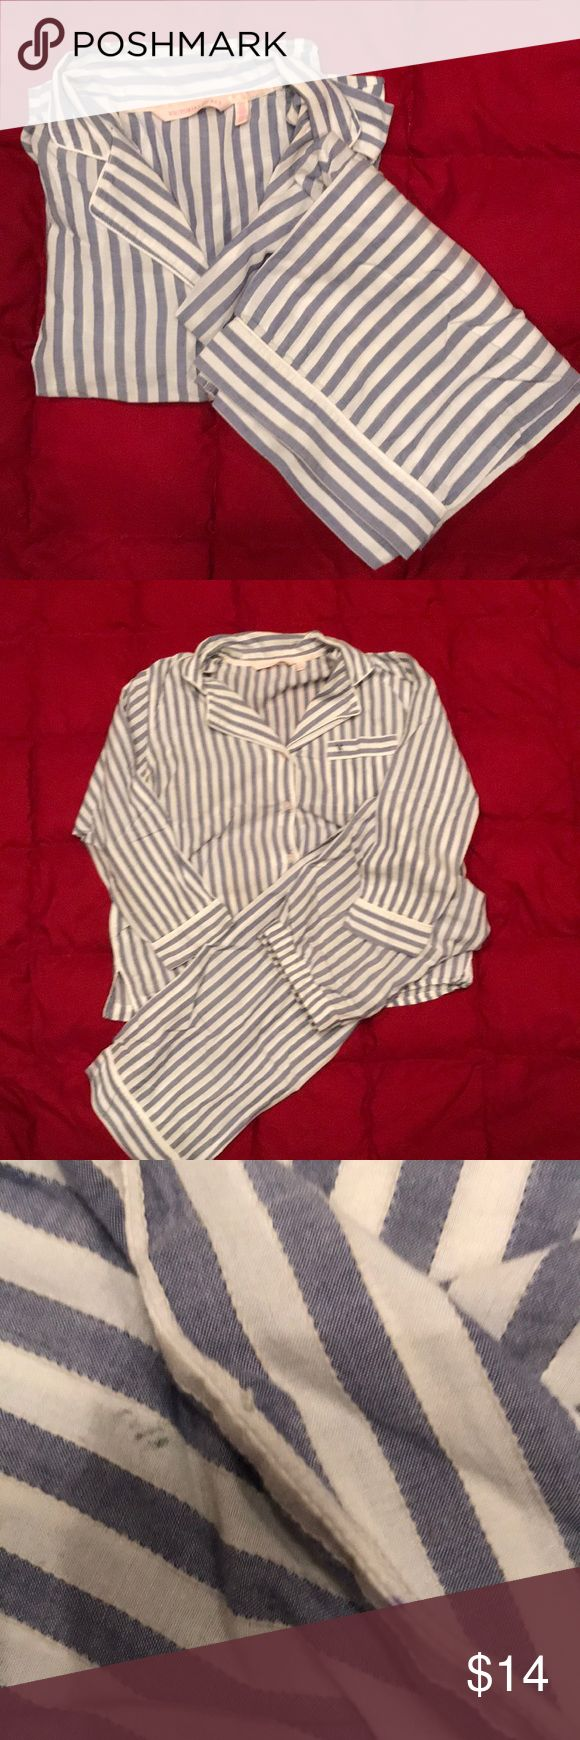 "Victoria Secret PJ Set! Beautiful pajamas with grey-blue and white stripes. Perfect condition!  Washed and dried on delicate cycles. Just trying to narrow my choices, pajama addict!   100% cotton, fits true to size.  Underarm to underarm 20"" Inseam 27"" Two small stains, last pic.  Offers welcome! Victoria's Secret Intimates & Sleepwear Pajamas"